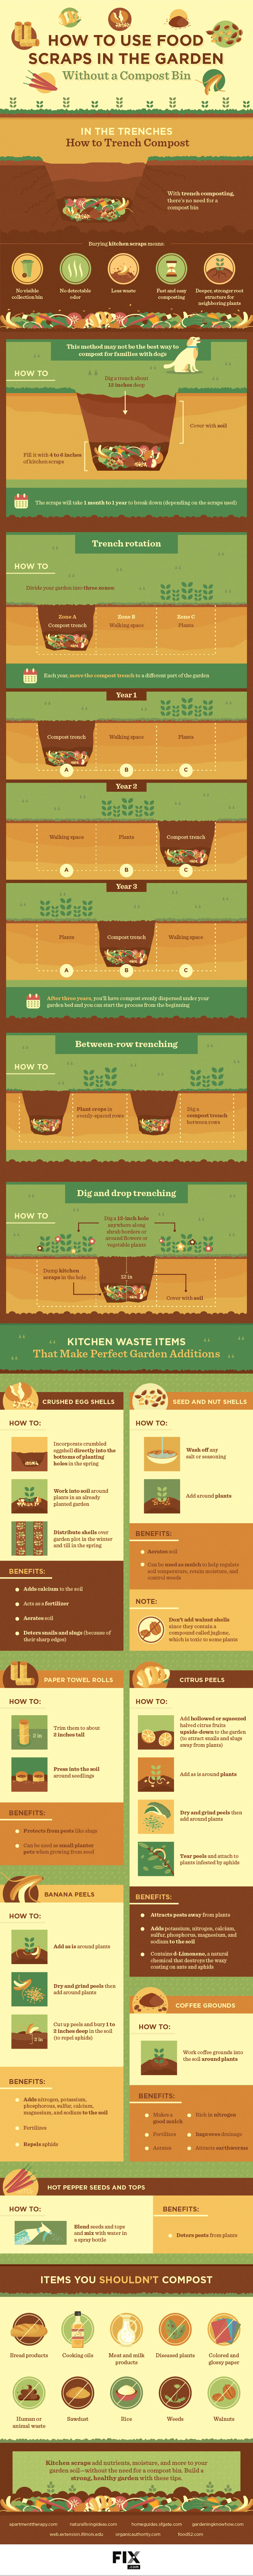 Trench Composting is an easy and inexpensive way to get nutrients into your garden soil when you don't have room for a compost bin. | Preparedn foressMama